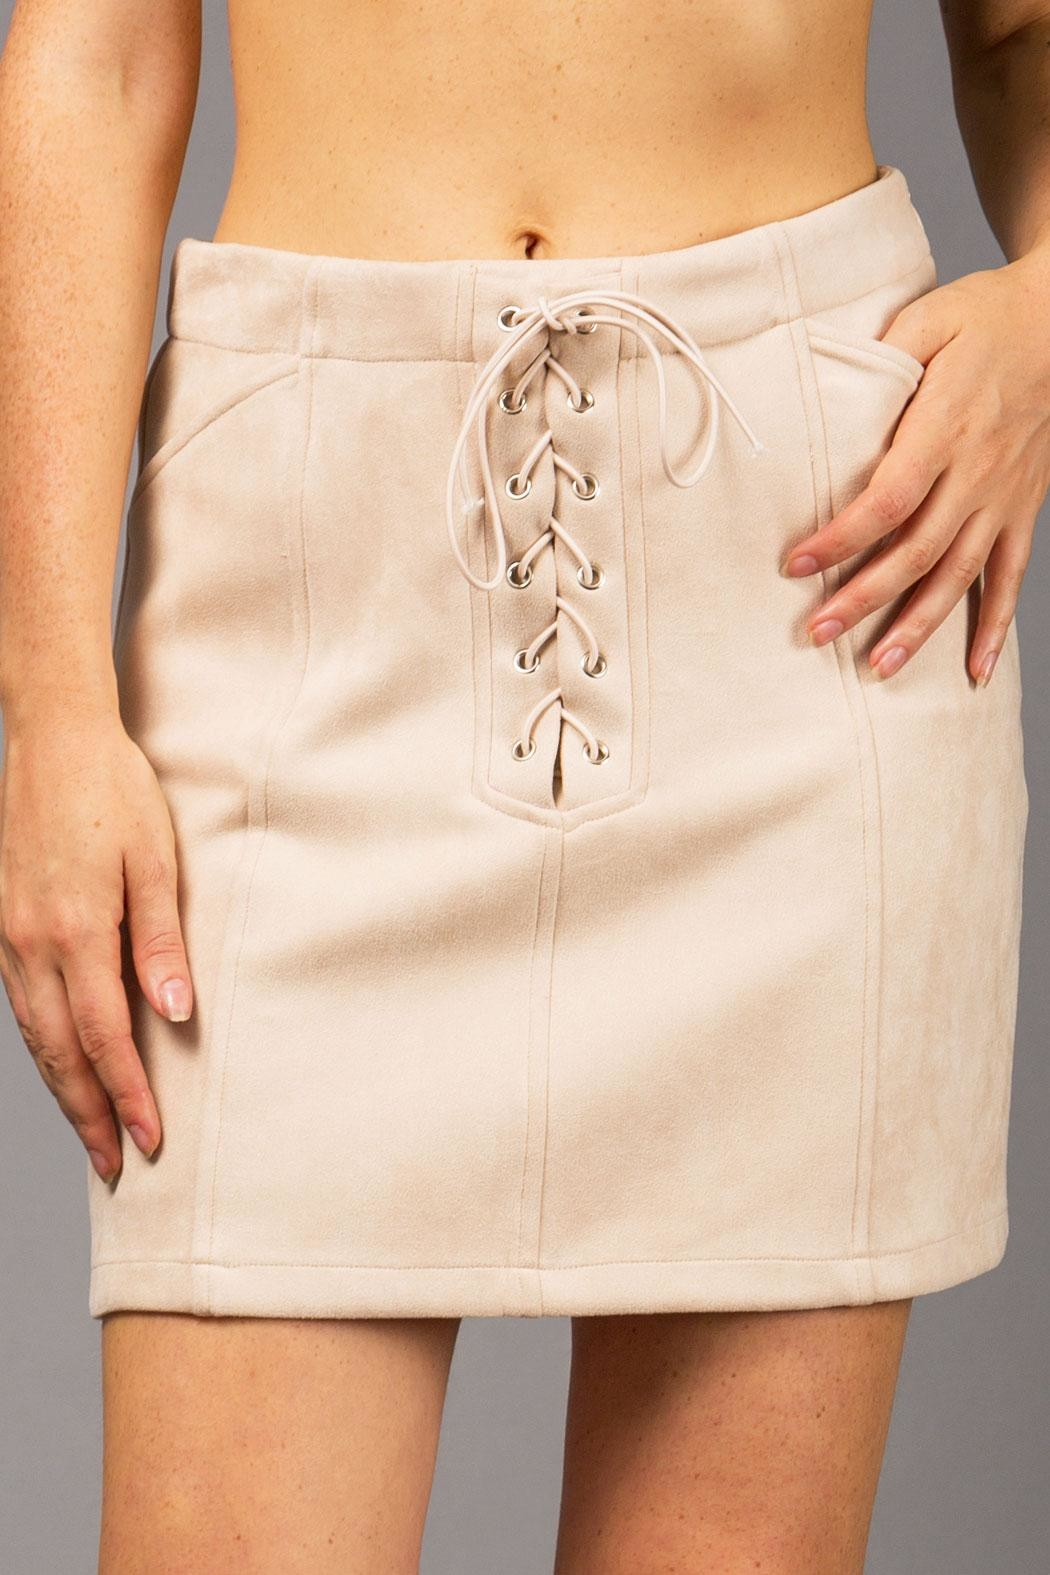 WREN & WILLA Suede Lace-Up Skirt - Main Image